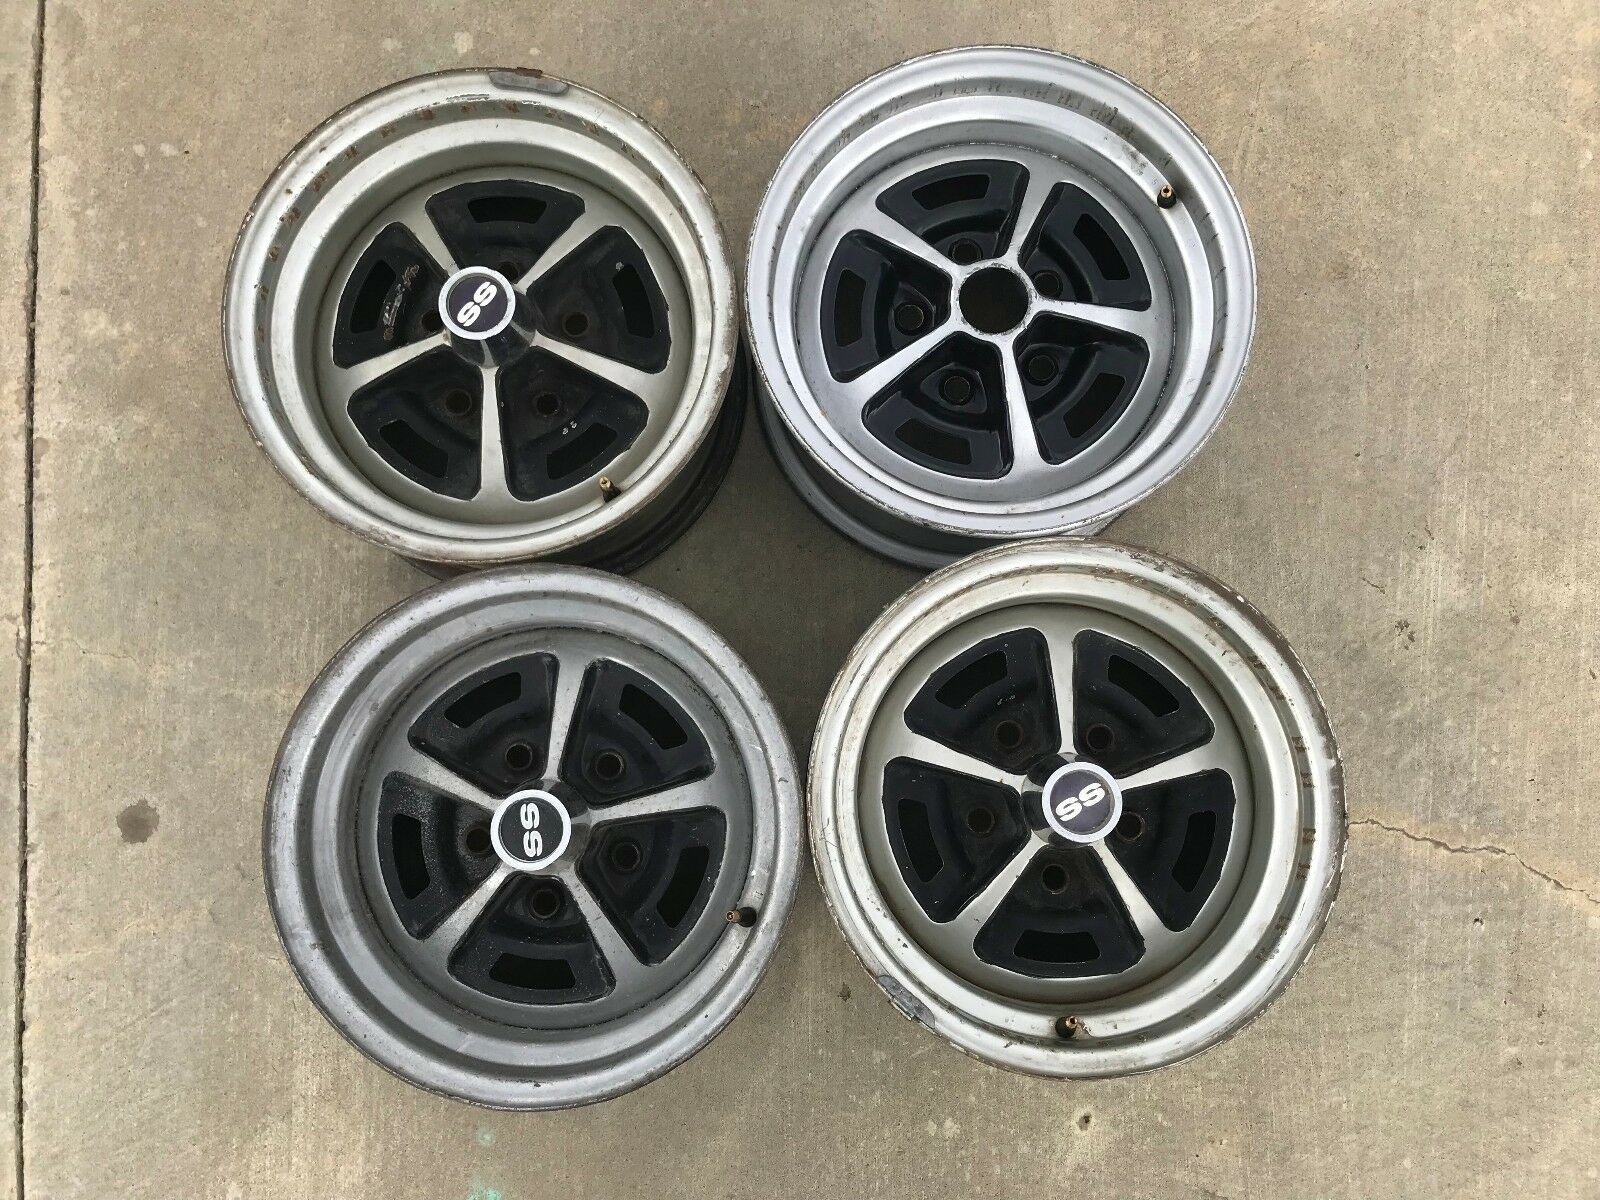 1970 Chevelle SS El Camino Nova Camaro 14 X 7 Wheels Set of 4 AO Rims wheels